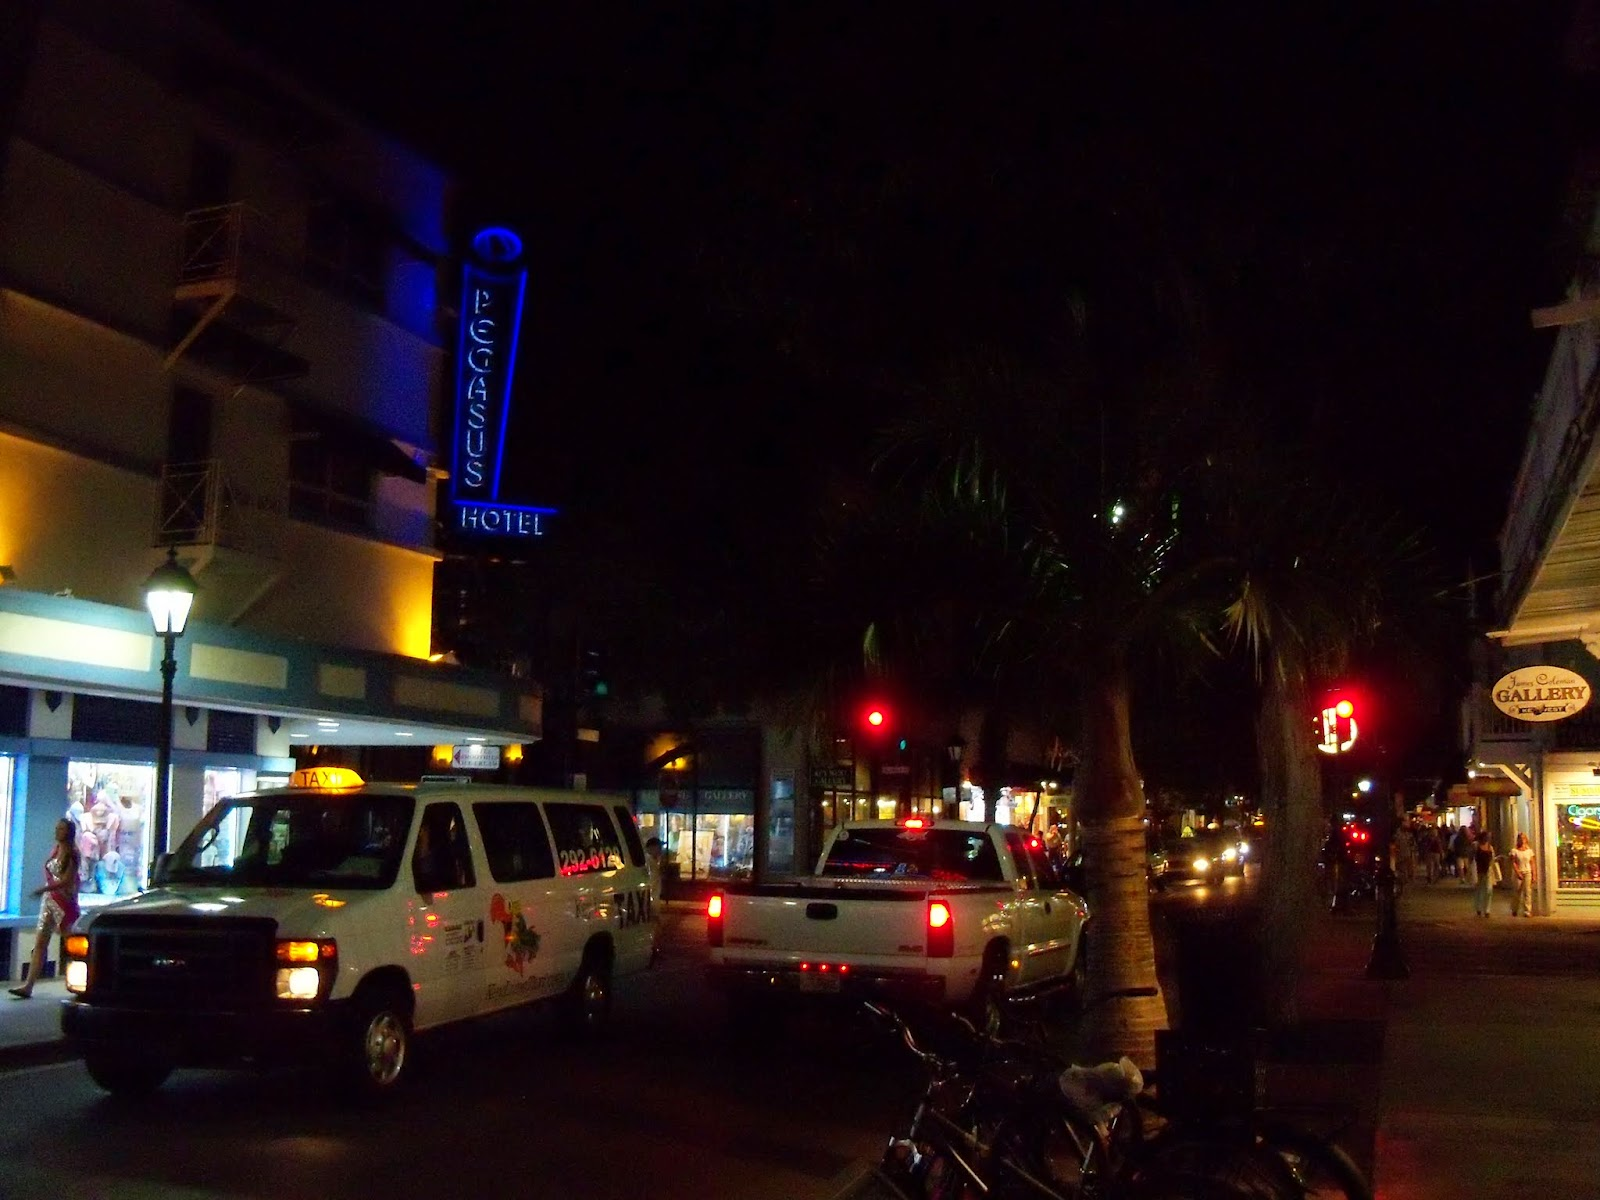 Key West Vacation - 116_5306.JPG